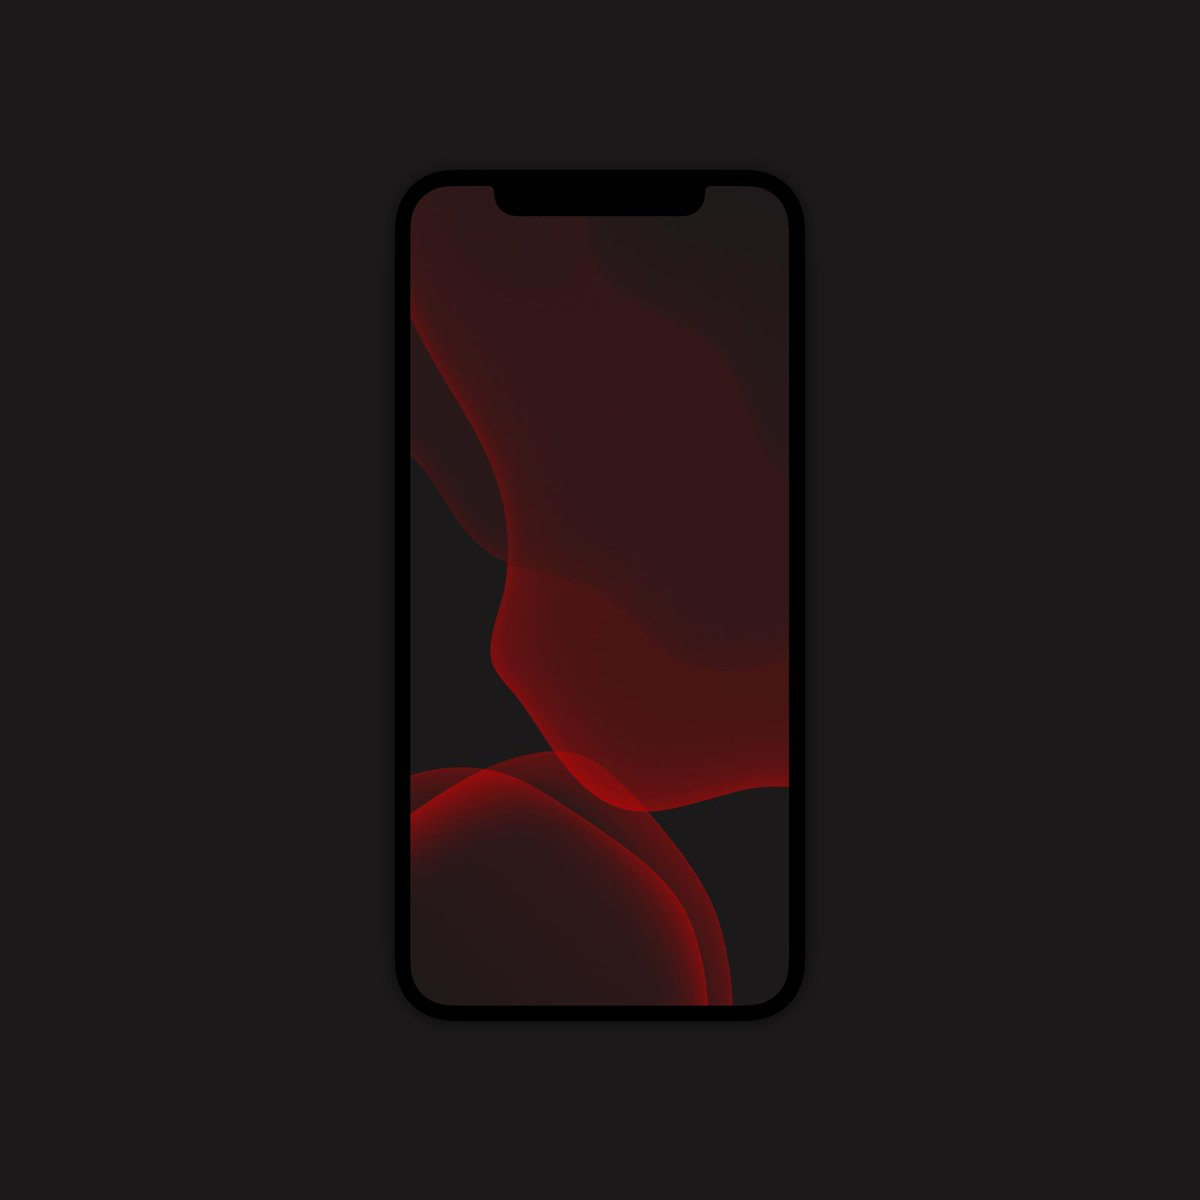 Whoever Like The Dark New Ios 13 Red Wallpaper Iphonex